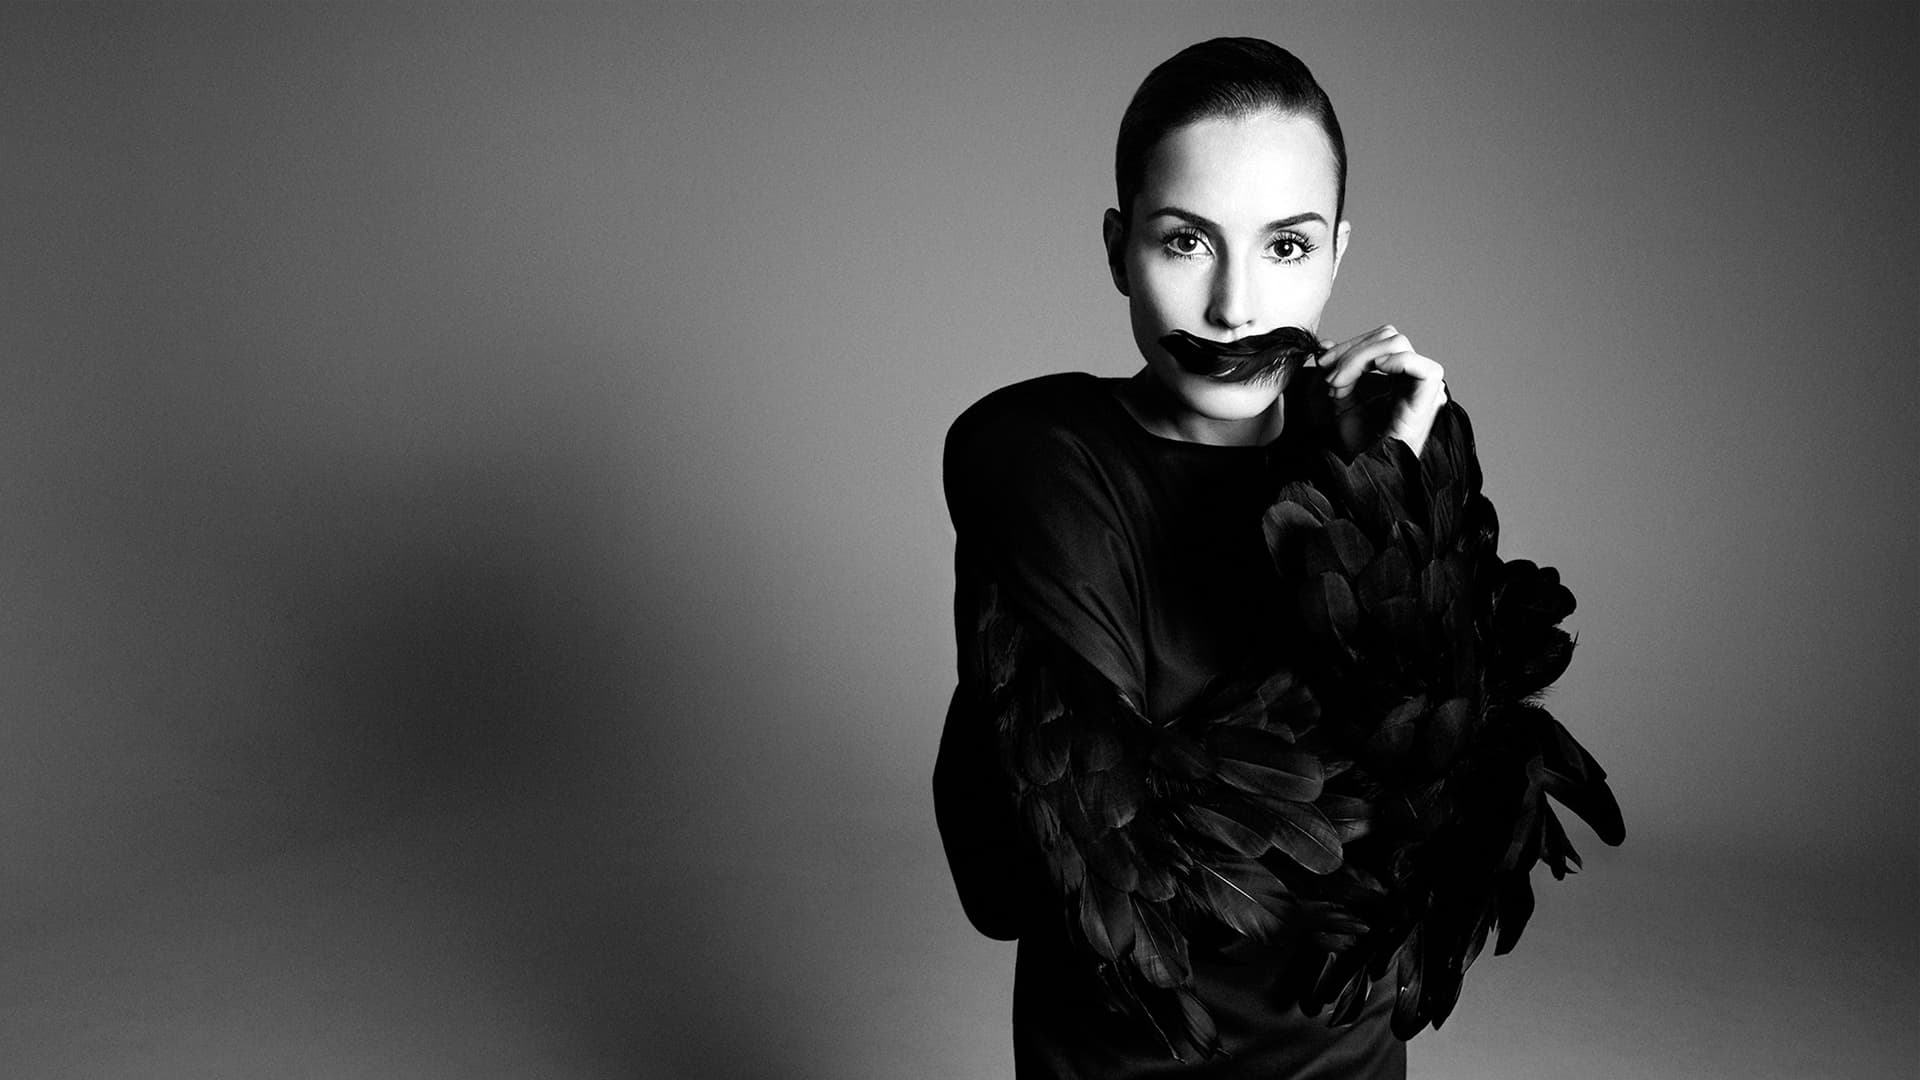 Noomi Rapace Background